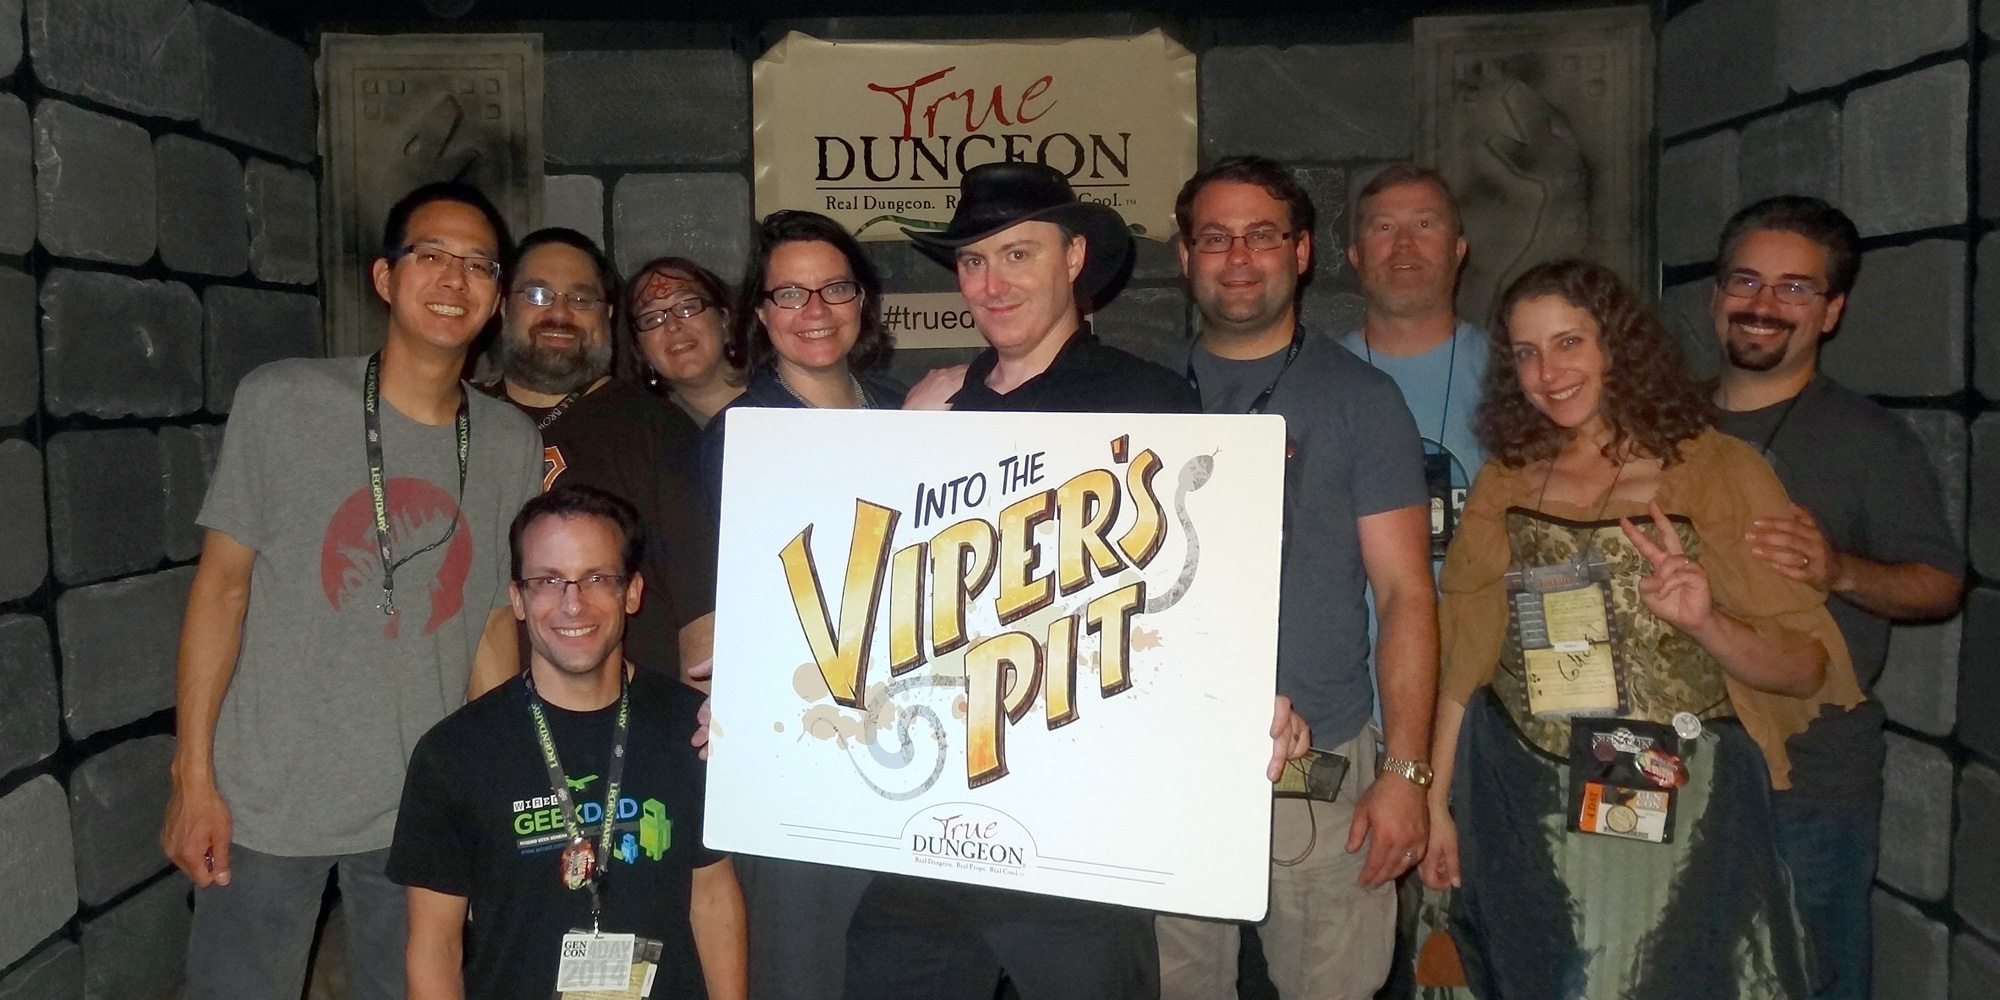 True Dungeon group photo